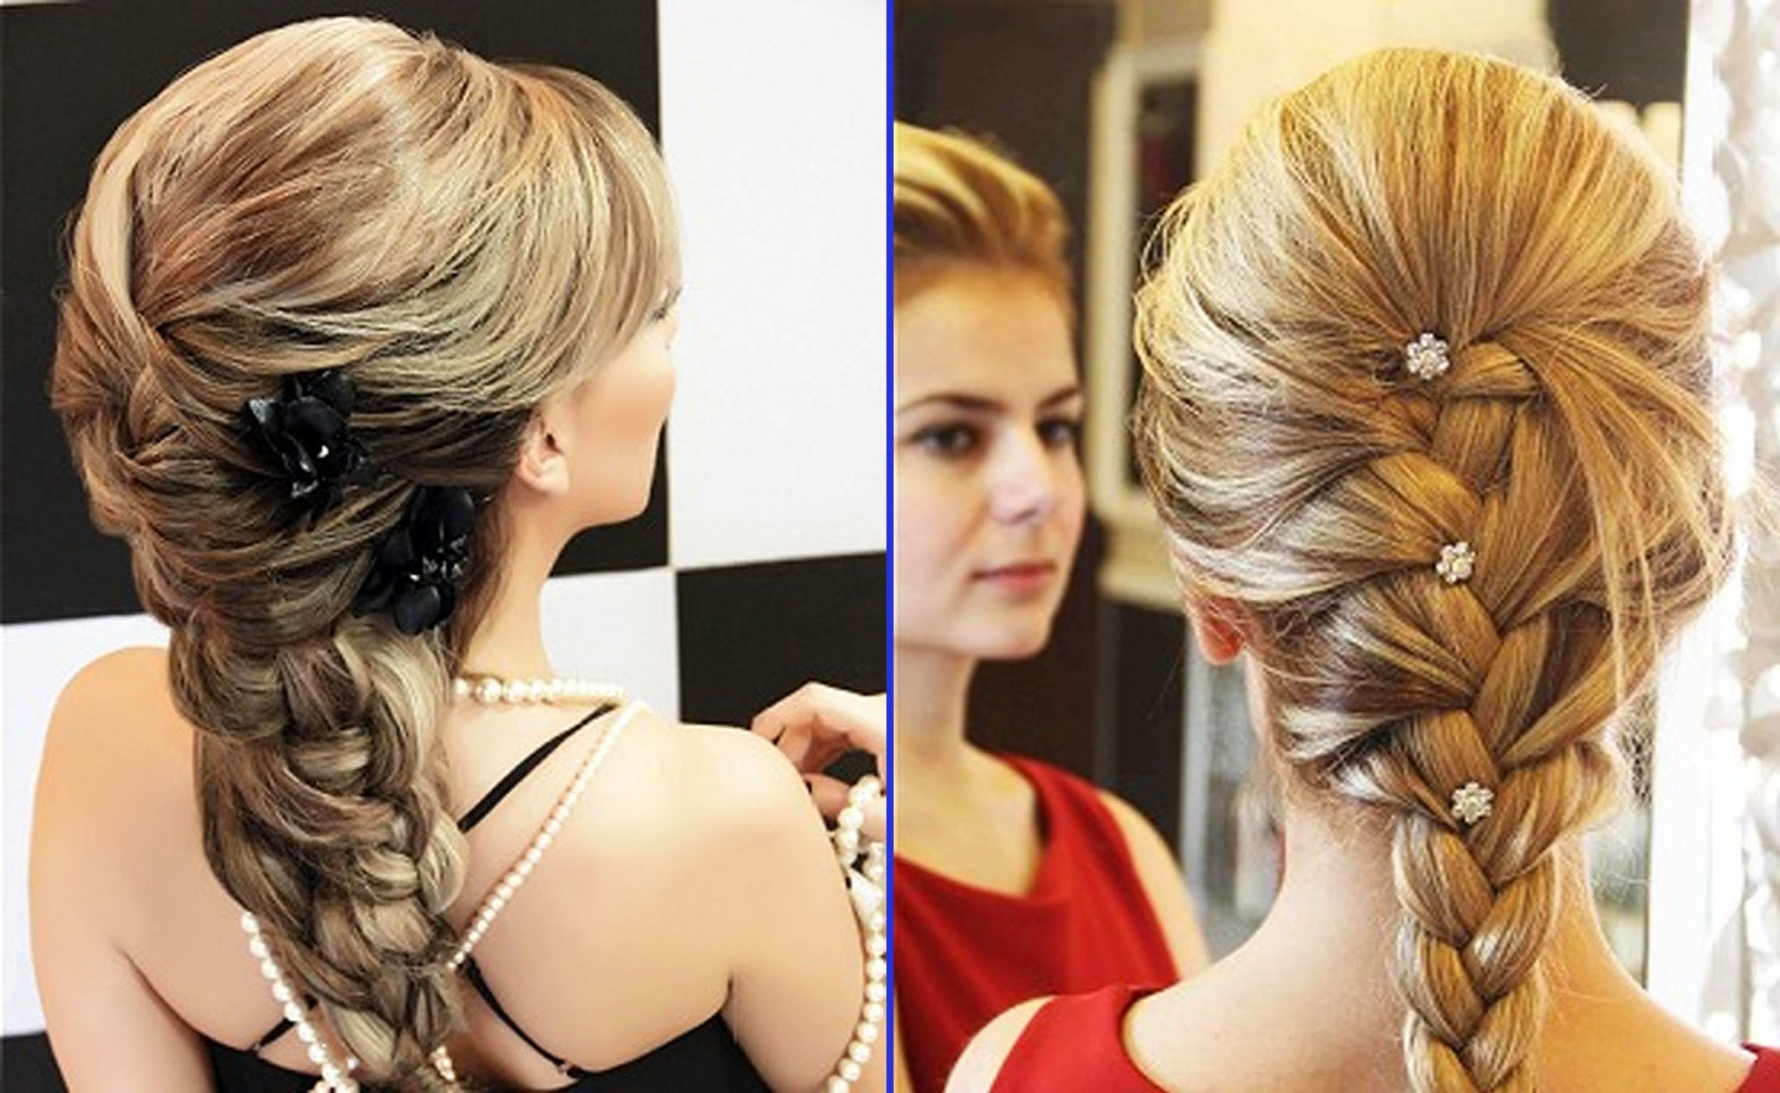 2018 Wedding Updos For Long Hair With Braids For Braided Hairstyles For Long Hair Wedding – Hairstyle For Women & Man (View 9 of 15)